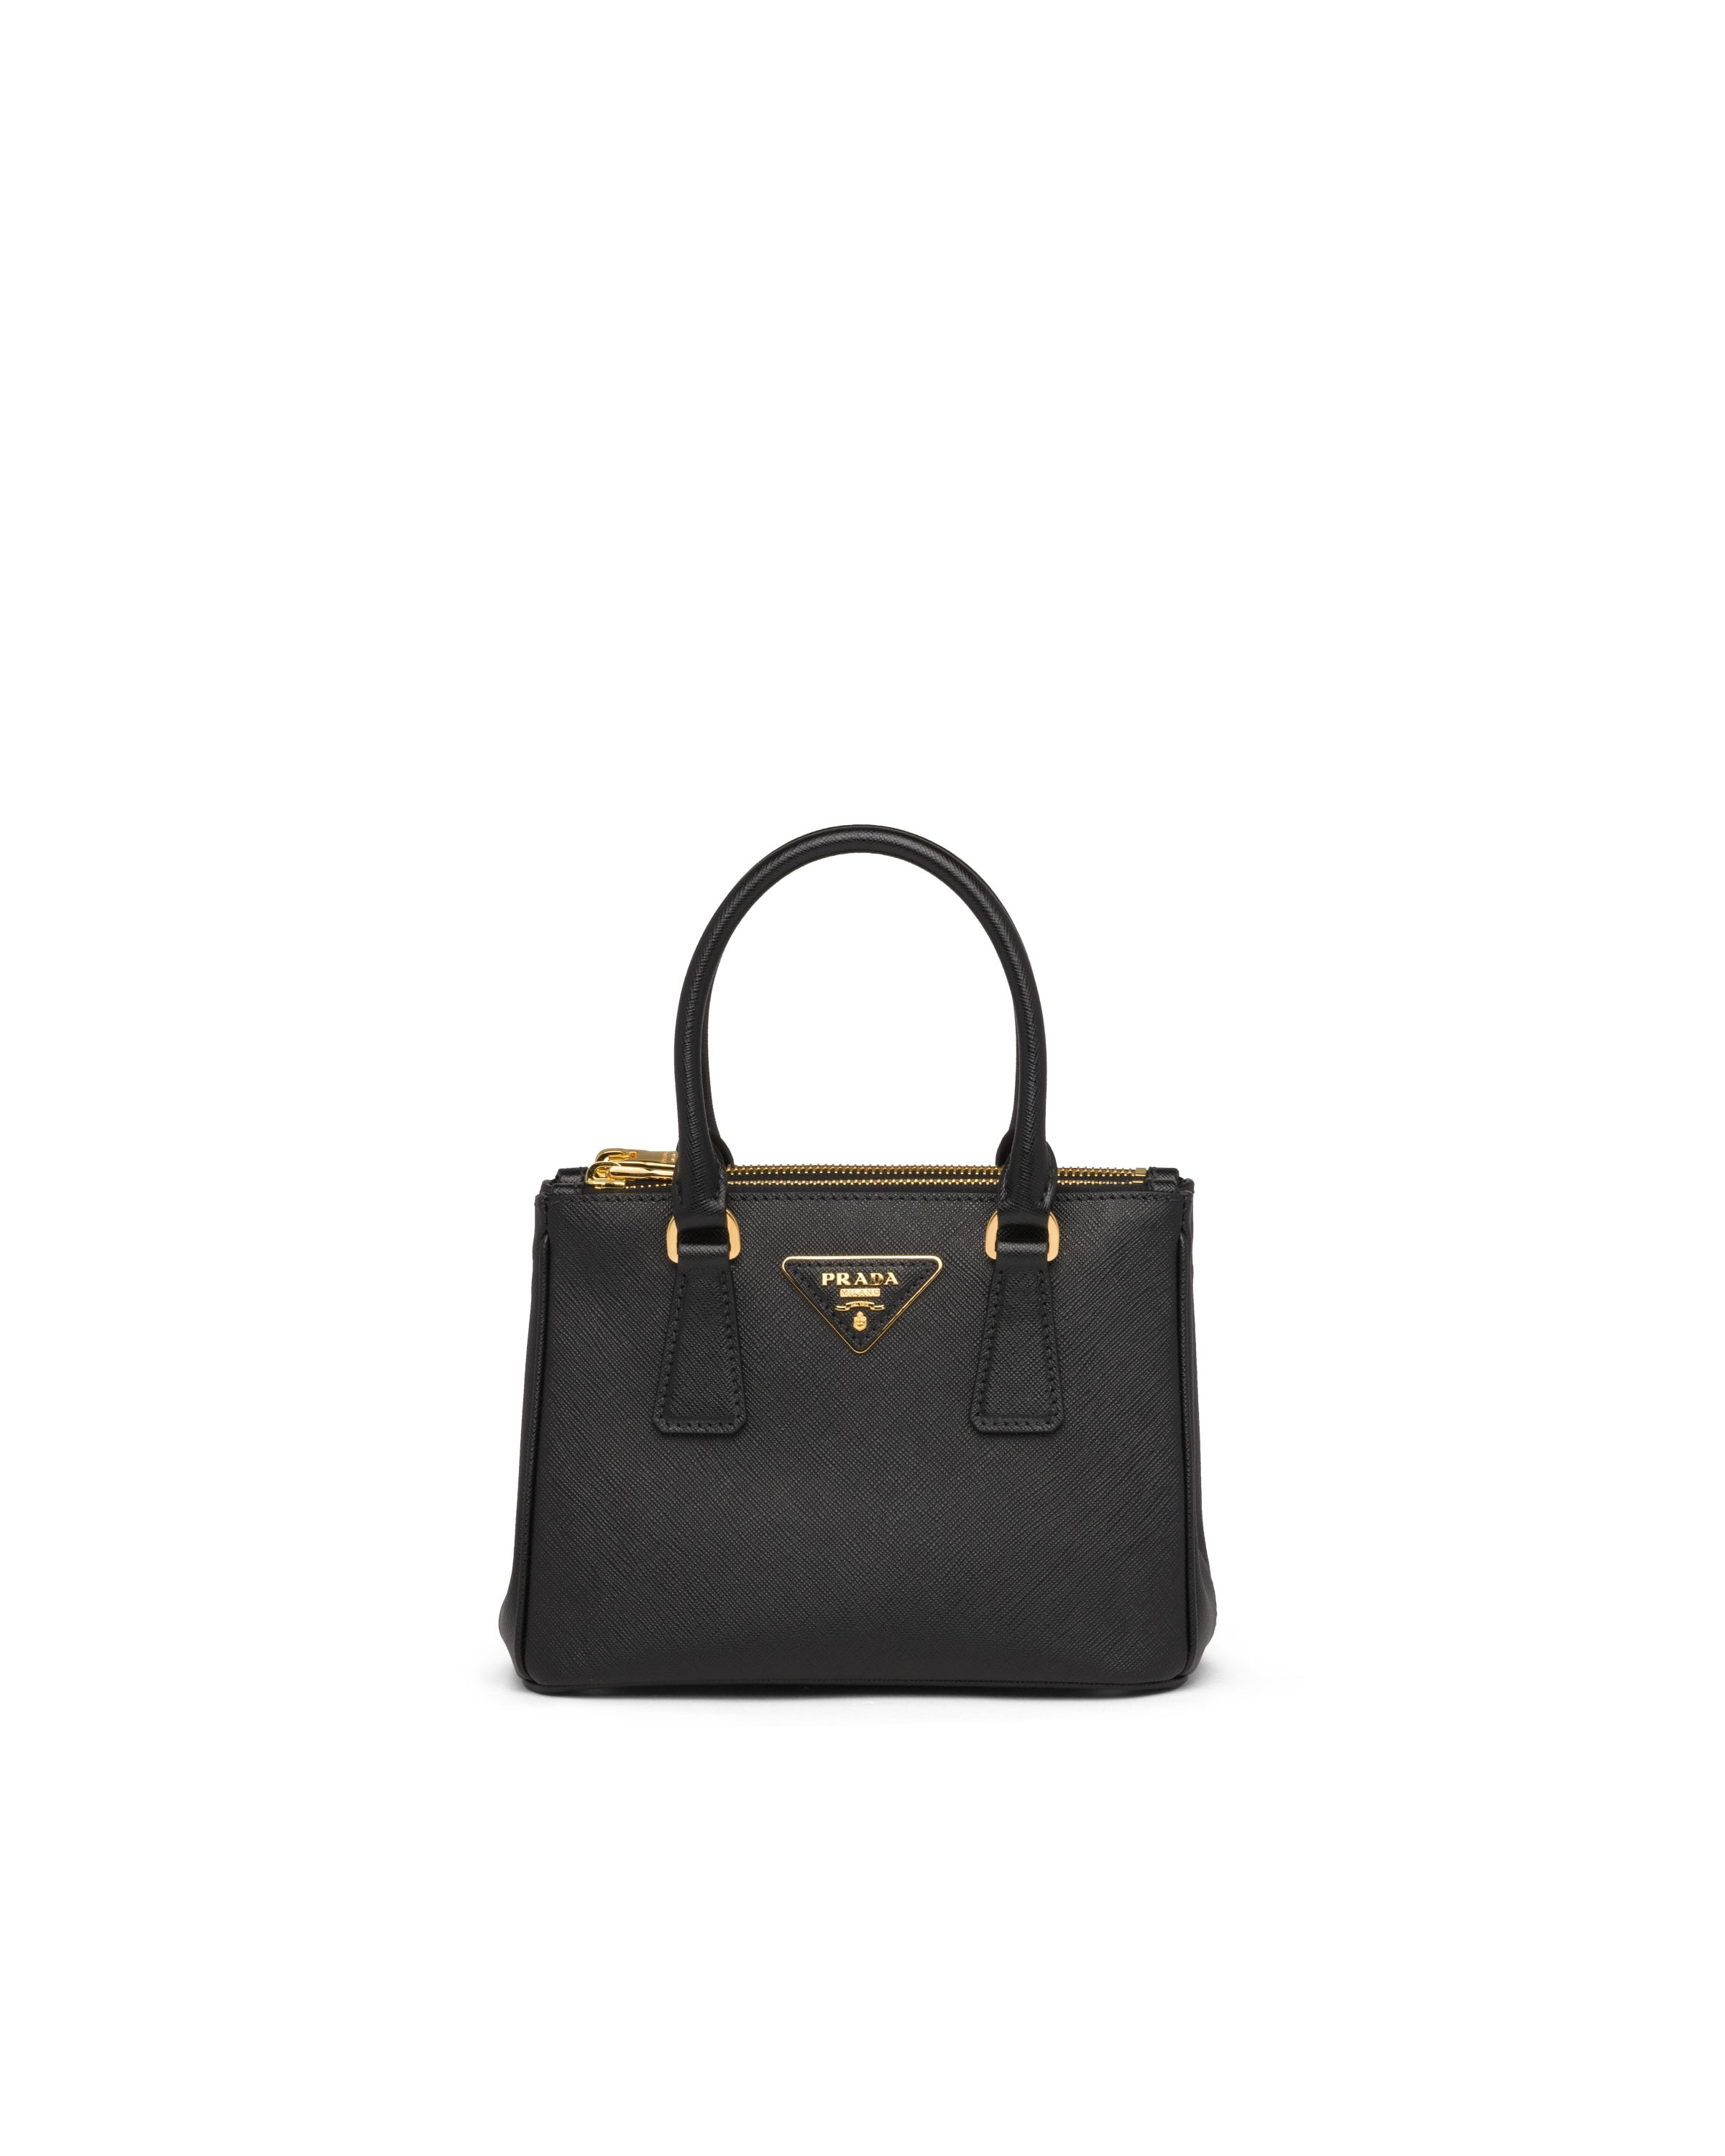 Prada Galleria Saffiano leather micro-bag